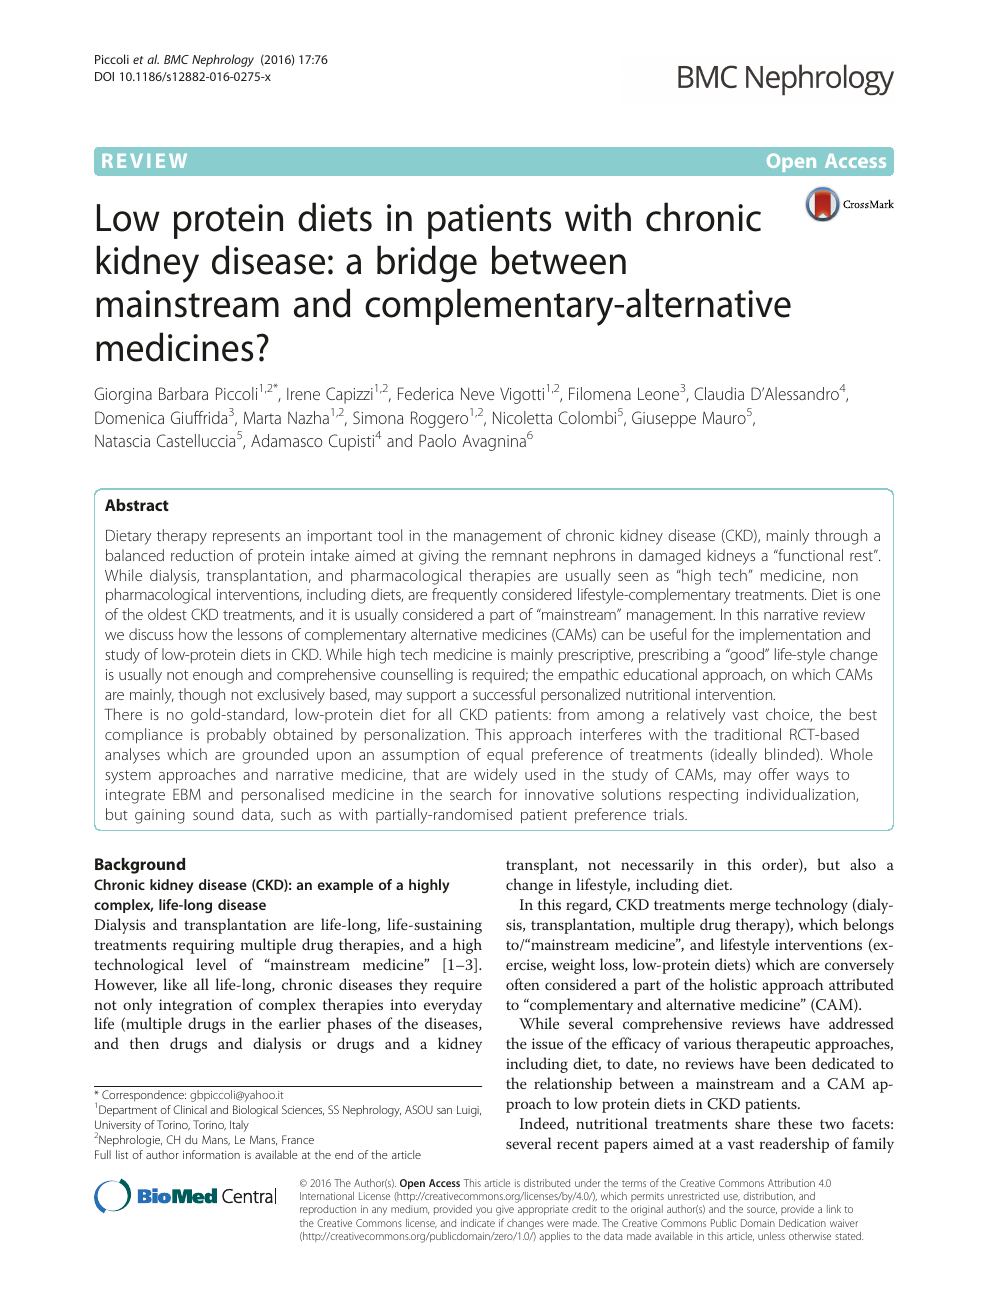 Low protein diets in patients with chronic kidney disease: a